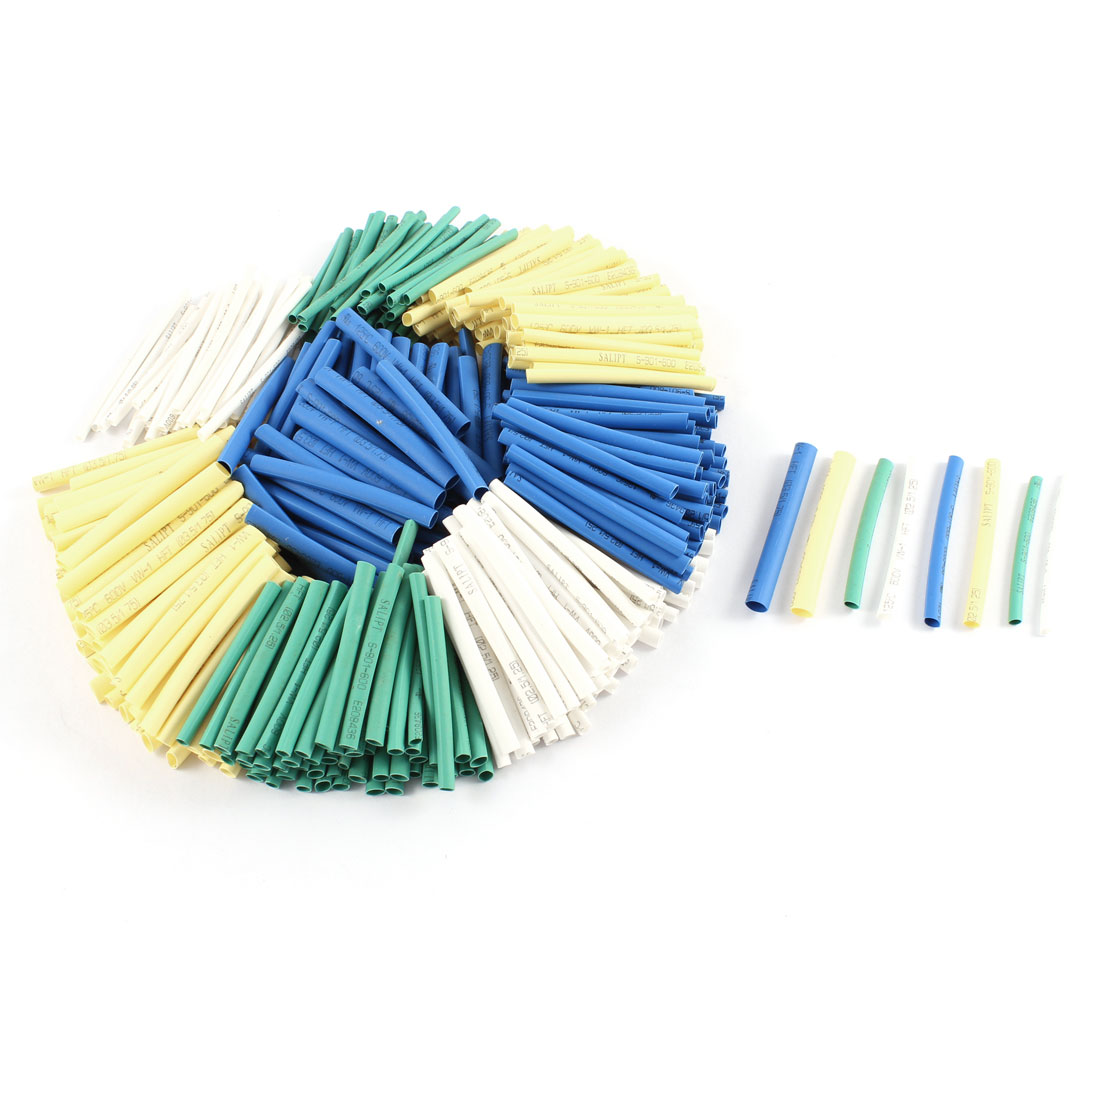 200 Pcs Polyolefin Heat Shrink Tubing Shrinkable Tube Assorted Color